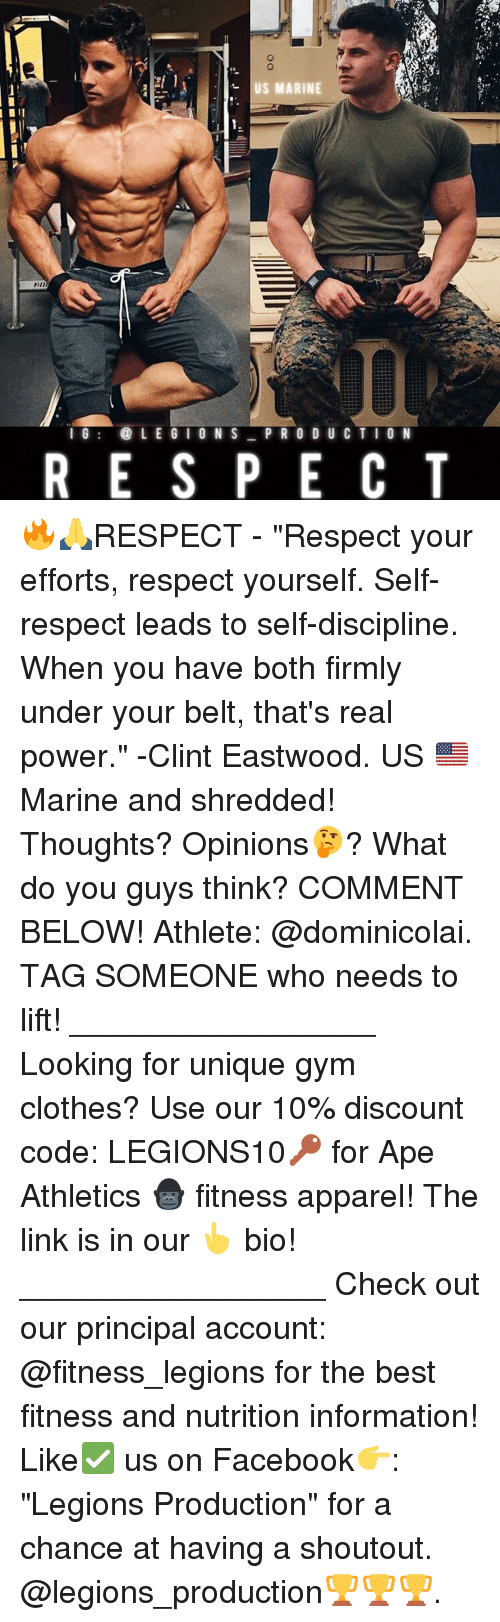 "Clint Eastwood: US MARINE  I G  LEGION S  PR O D U C T I O N  R E S P E C T 🔥🙏RESPECT - ""Respect your efforts, respect yourself. Self-respect leads to self-discipline. When you have both firmly under your belt, that's real power."" -Clint Eastwood. US 🇺🇸 Marine and shredded! Thoughts? Opinions🤔? What do you guys think? COMMENT BELOW! Athlete: @dominicolai. TAG SOMEONE who needs to lift! _________________ Looking for unique gym clothes? Use our 10% discount code: LEGIONS10🔑 for Ape Athletics 🦍 fitness apparel! The link is in our 👆 bio! _________________ Check out our principal account: @fitness_legions for the best fitness and nutrition information! Like✅ us on Facebook👉: ""Legions Production"" for a chance at having a shoutout. @legions_production🏆🏆🏆."